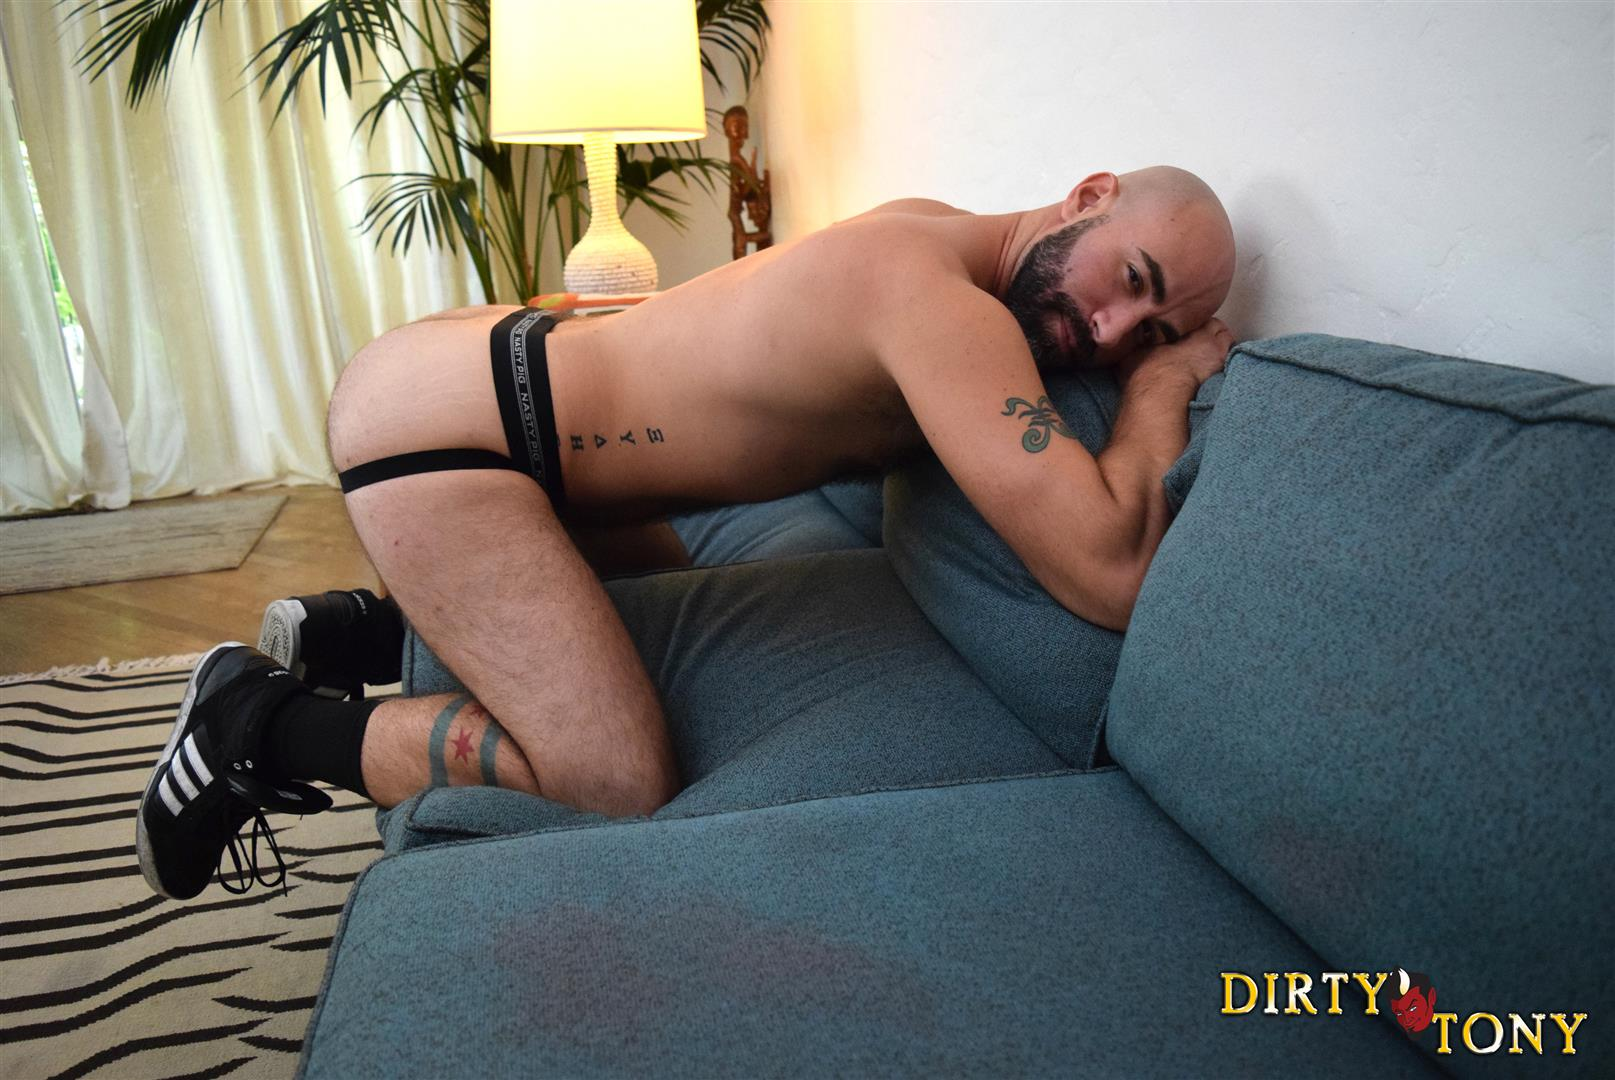 Dirty Tony Damon Andros Hairy Otter With A Thick Cock Amateur Gay Porn 02 Jocked Up Furry Otter Stroking His Thick Cock